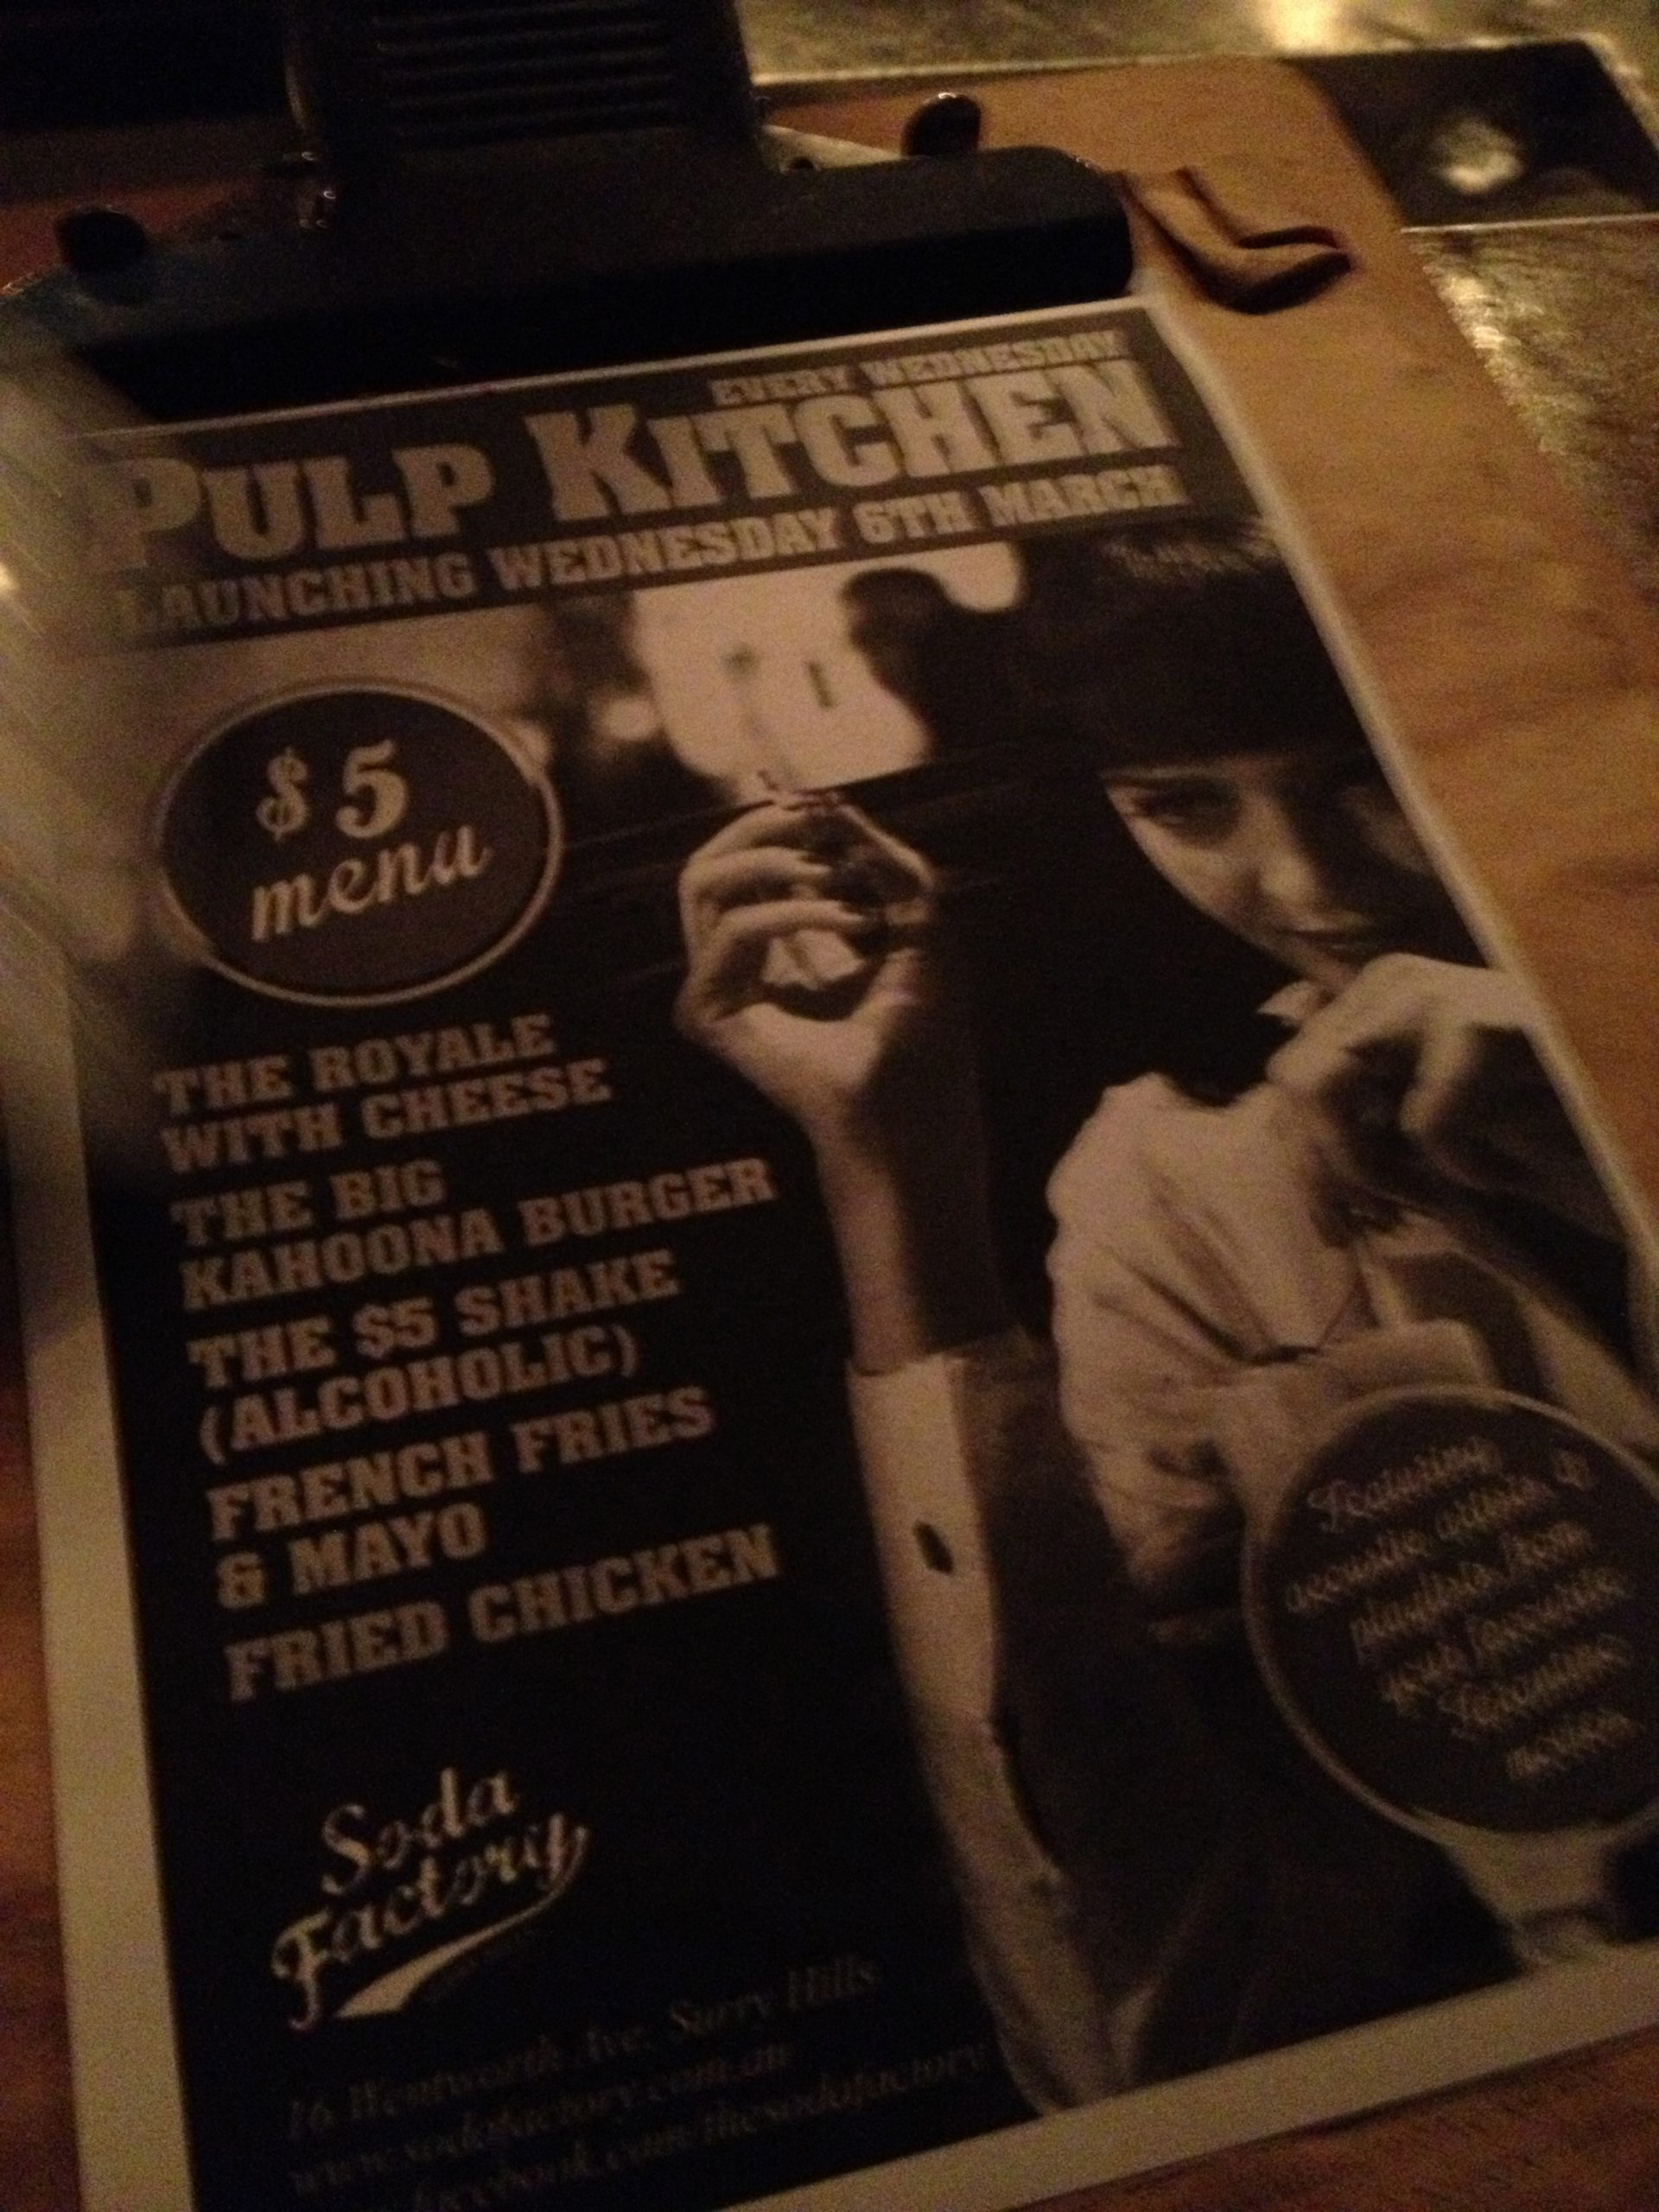 Pulp Kitchen menu